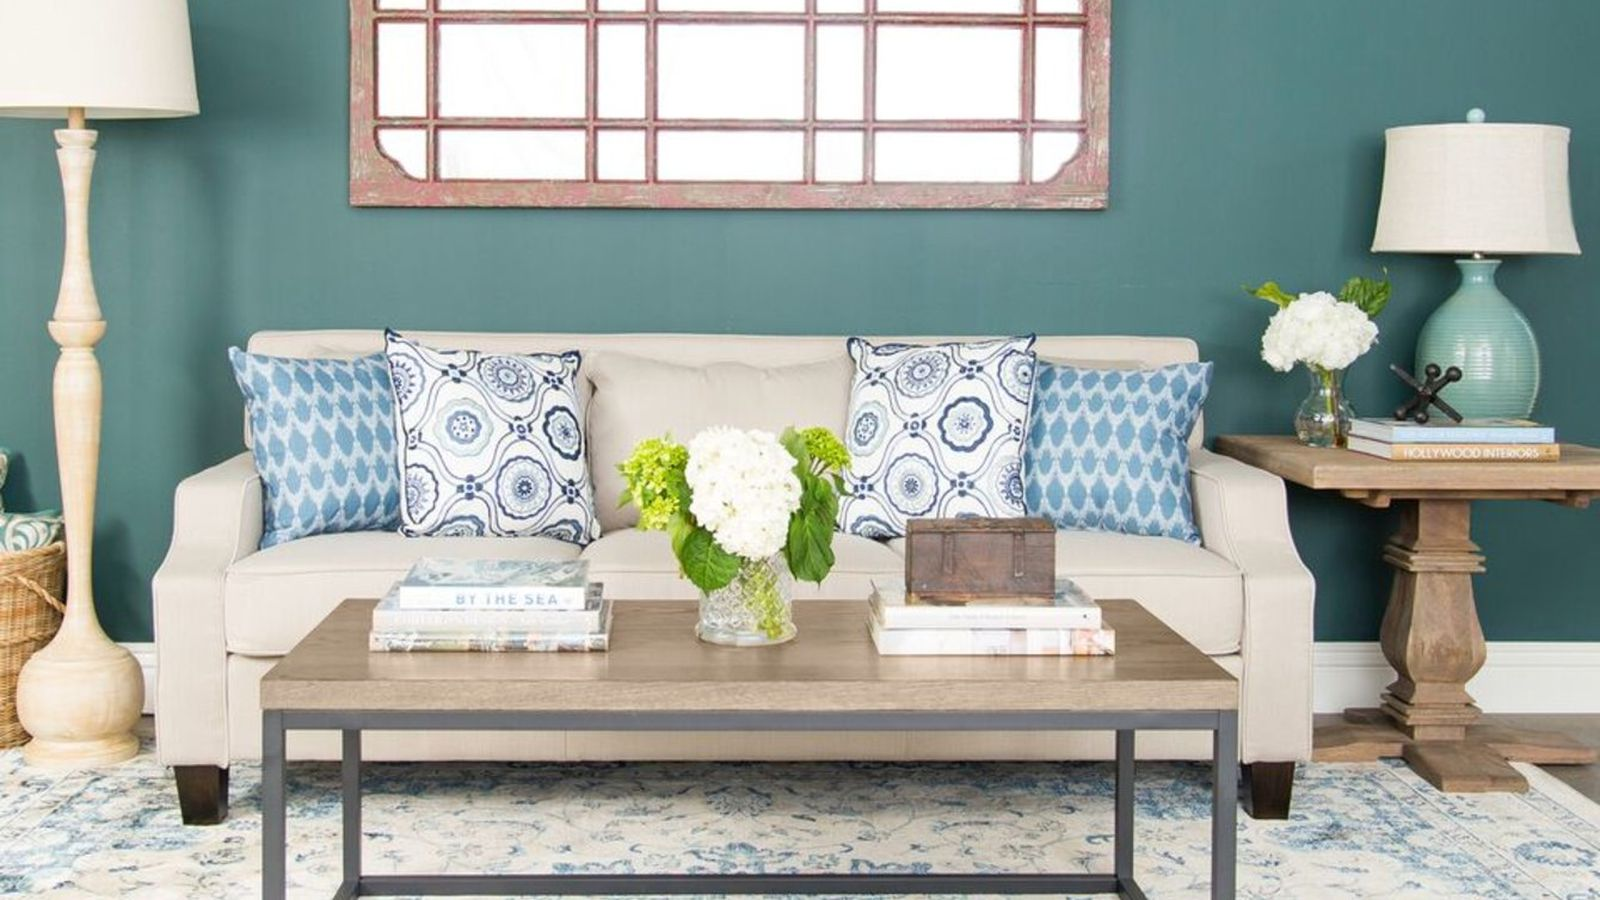 Home Depot And Laurel Wolf Partner For Interior Design